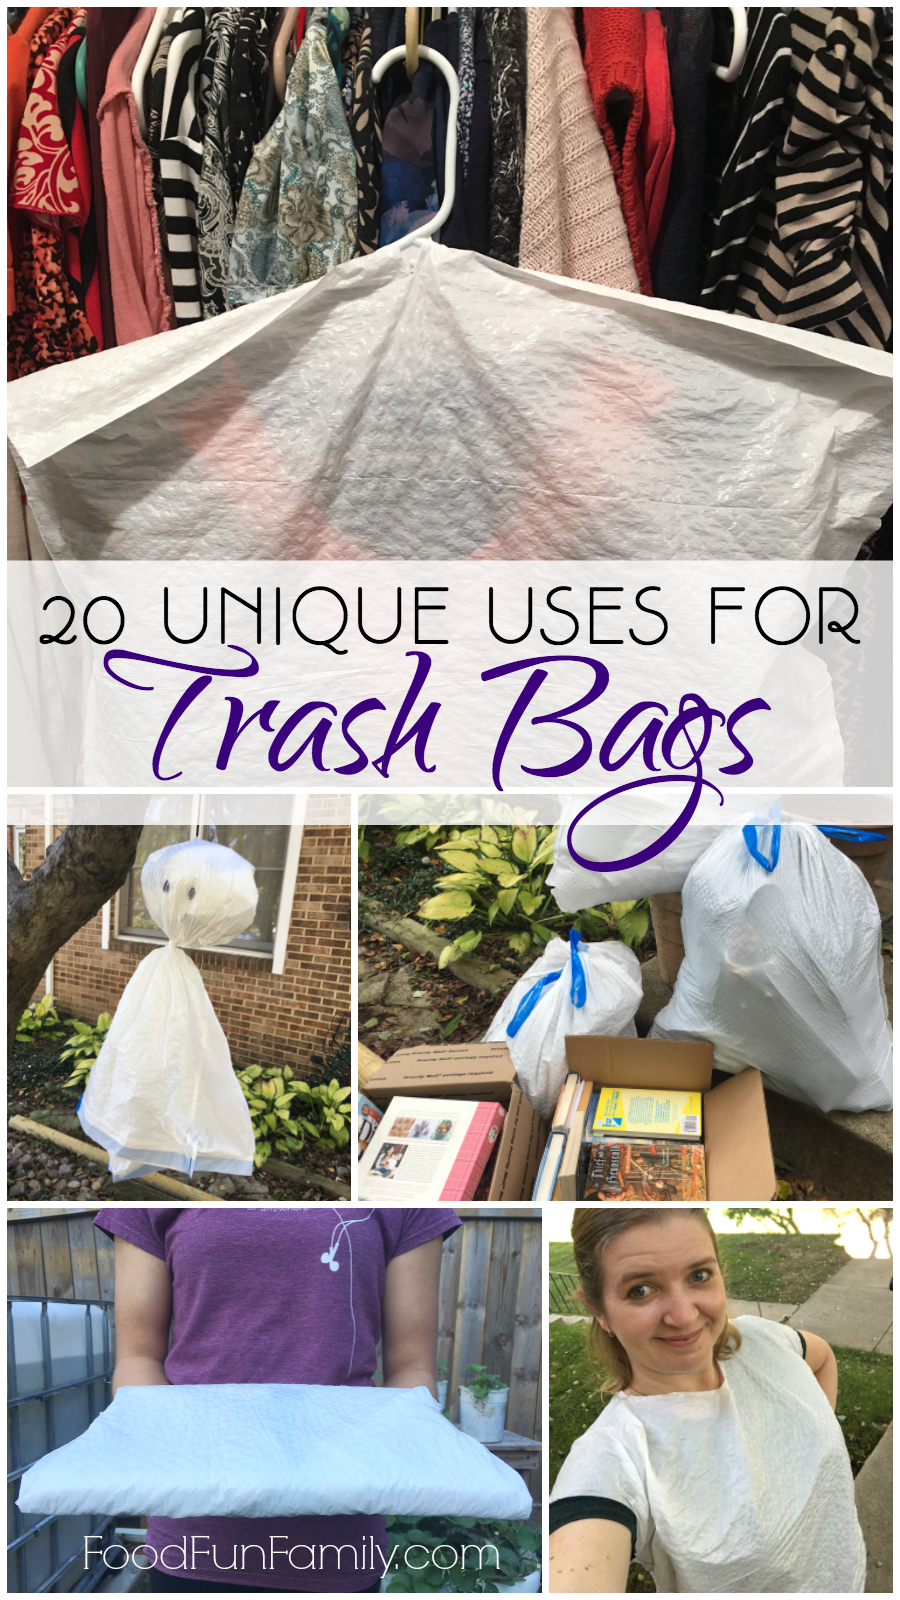 20 Unique Uses for Trash Bags